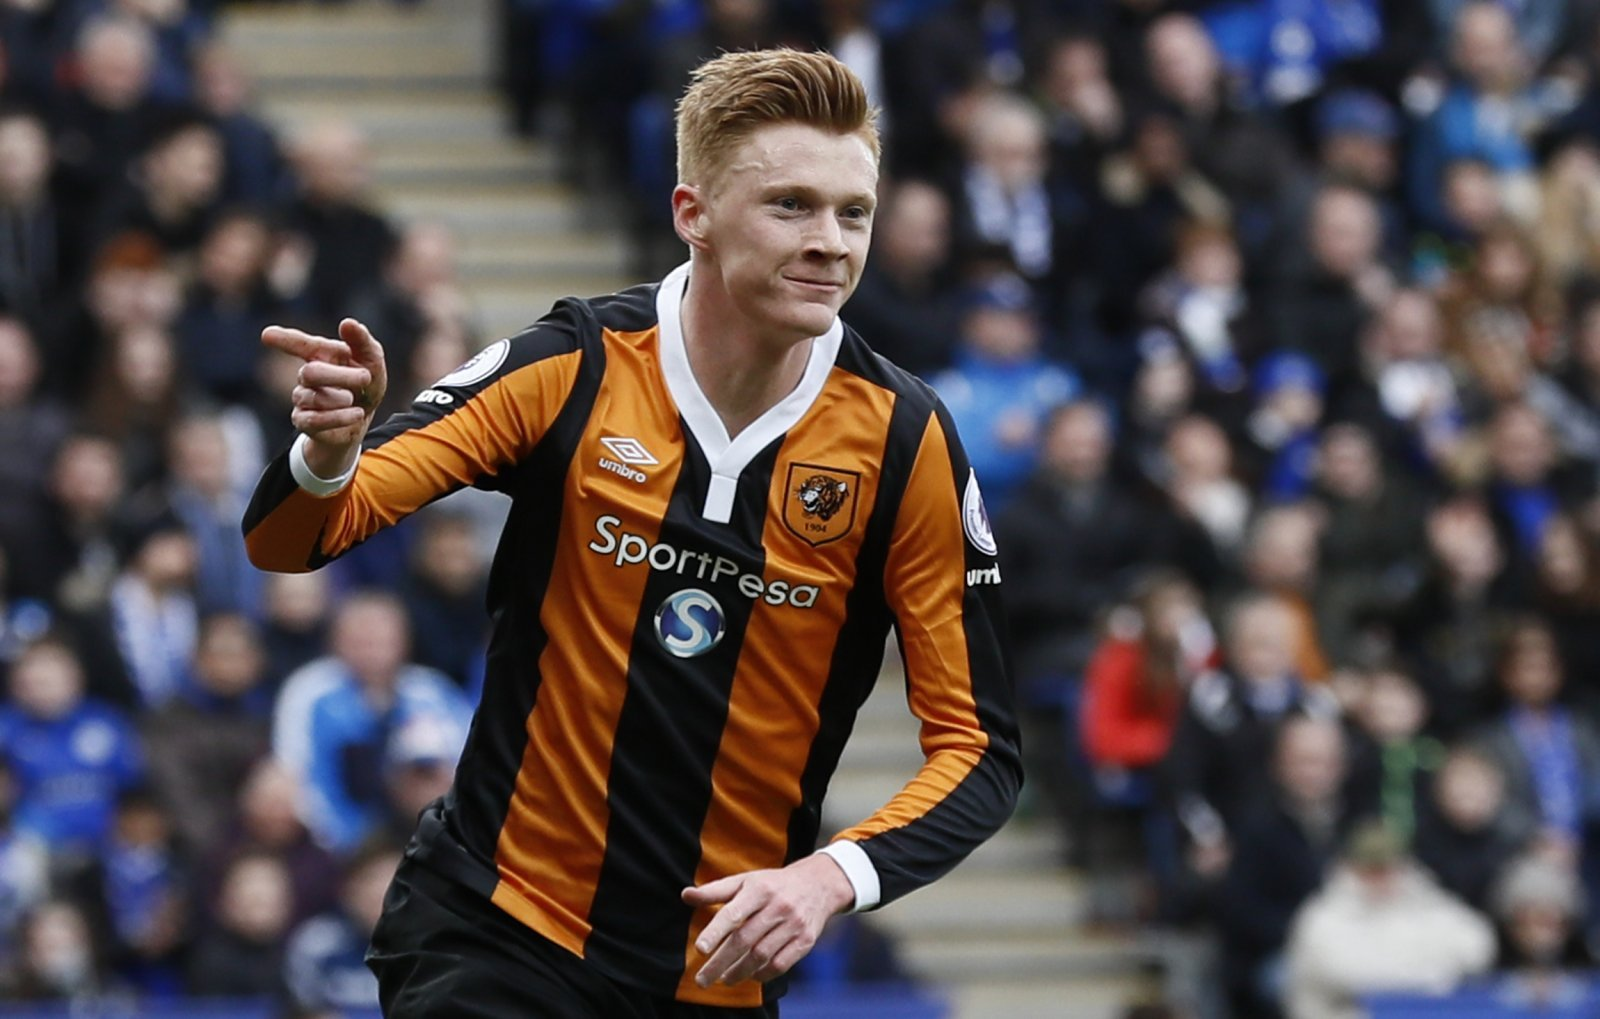 Sam Clucas would seriously add to Burnley squad ahead of Europa League campaign